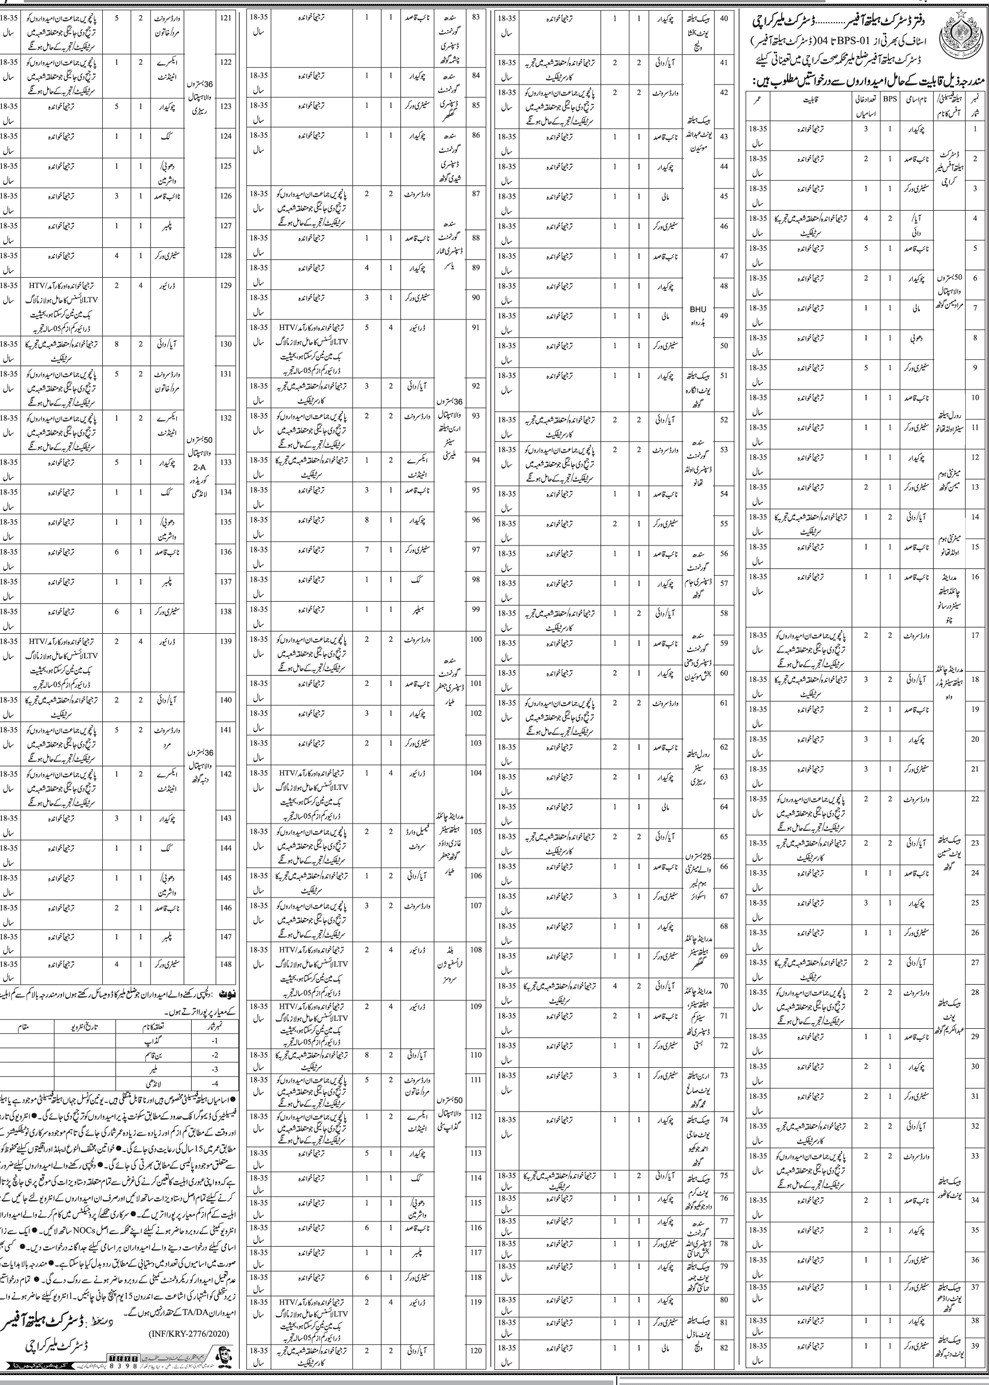 District Health Officer District Malir Jobs in Pakistan 2020 - Primary, Middle, Matric base Jobs in Pakistan 2021